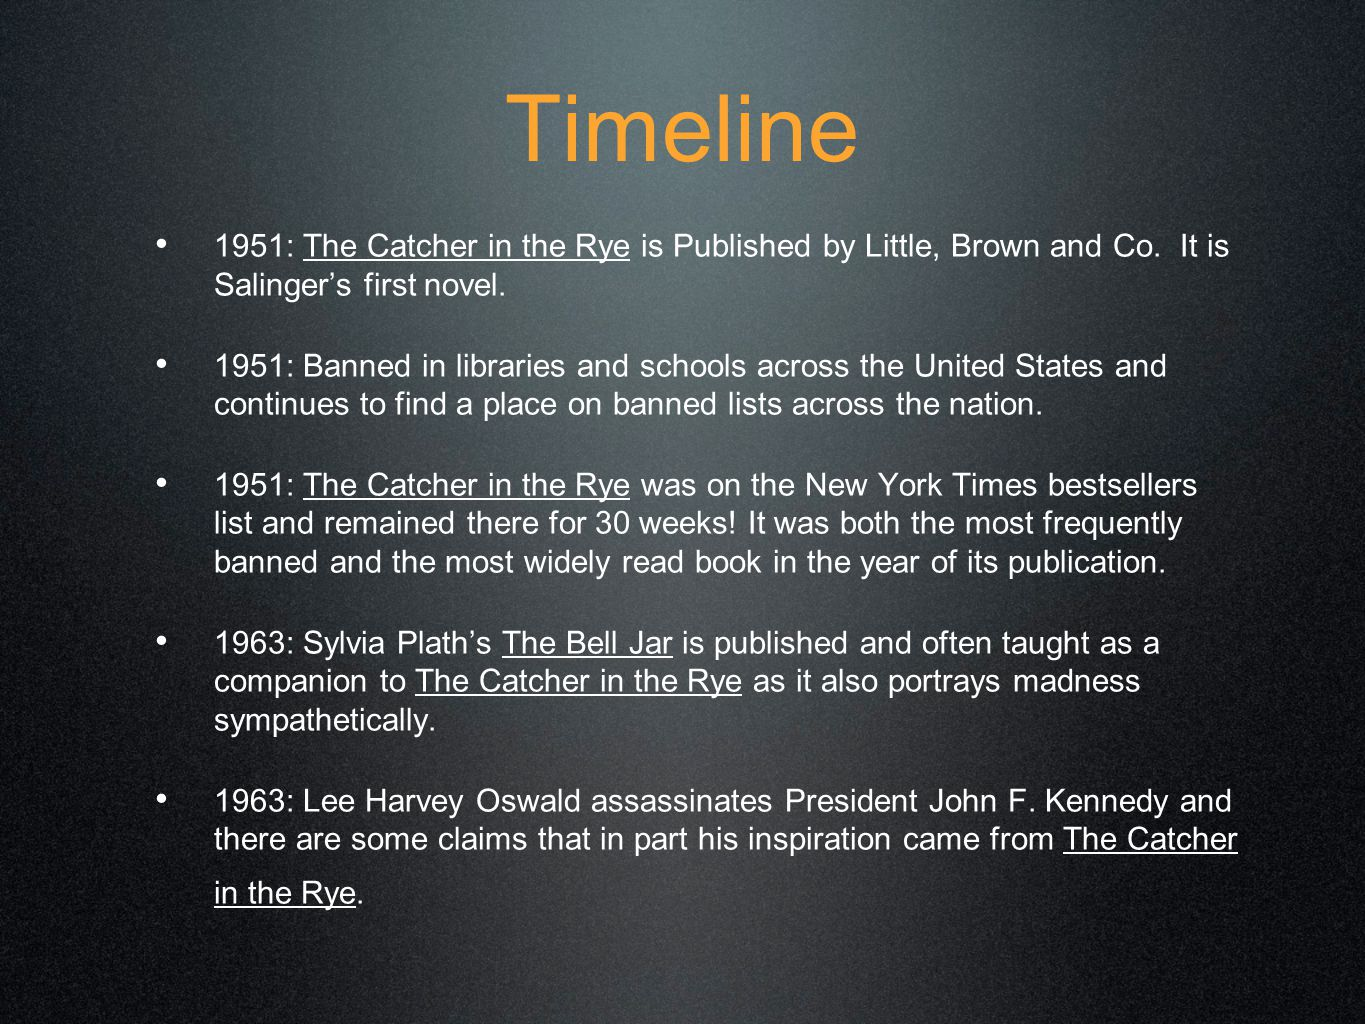 Timeline continued...1965: Jerome David Salinger stops publishing and becomes a recluse.